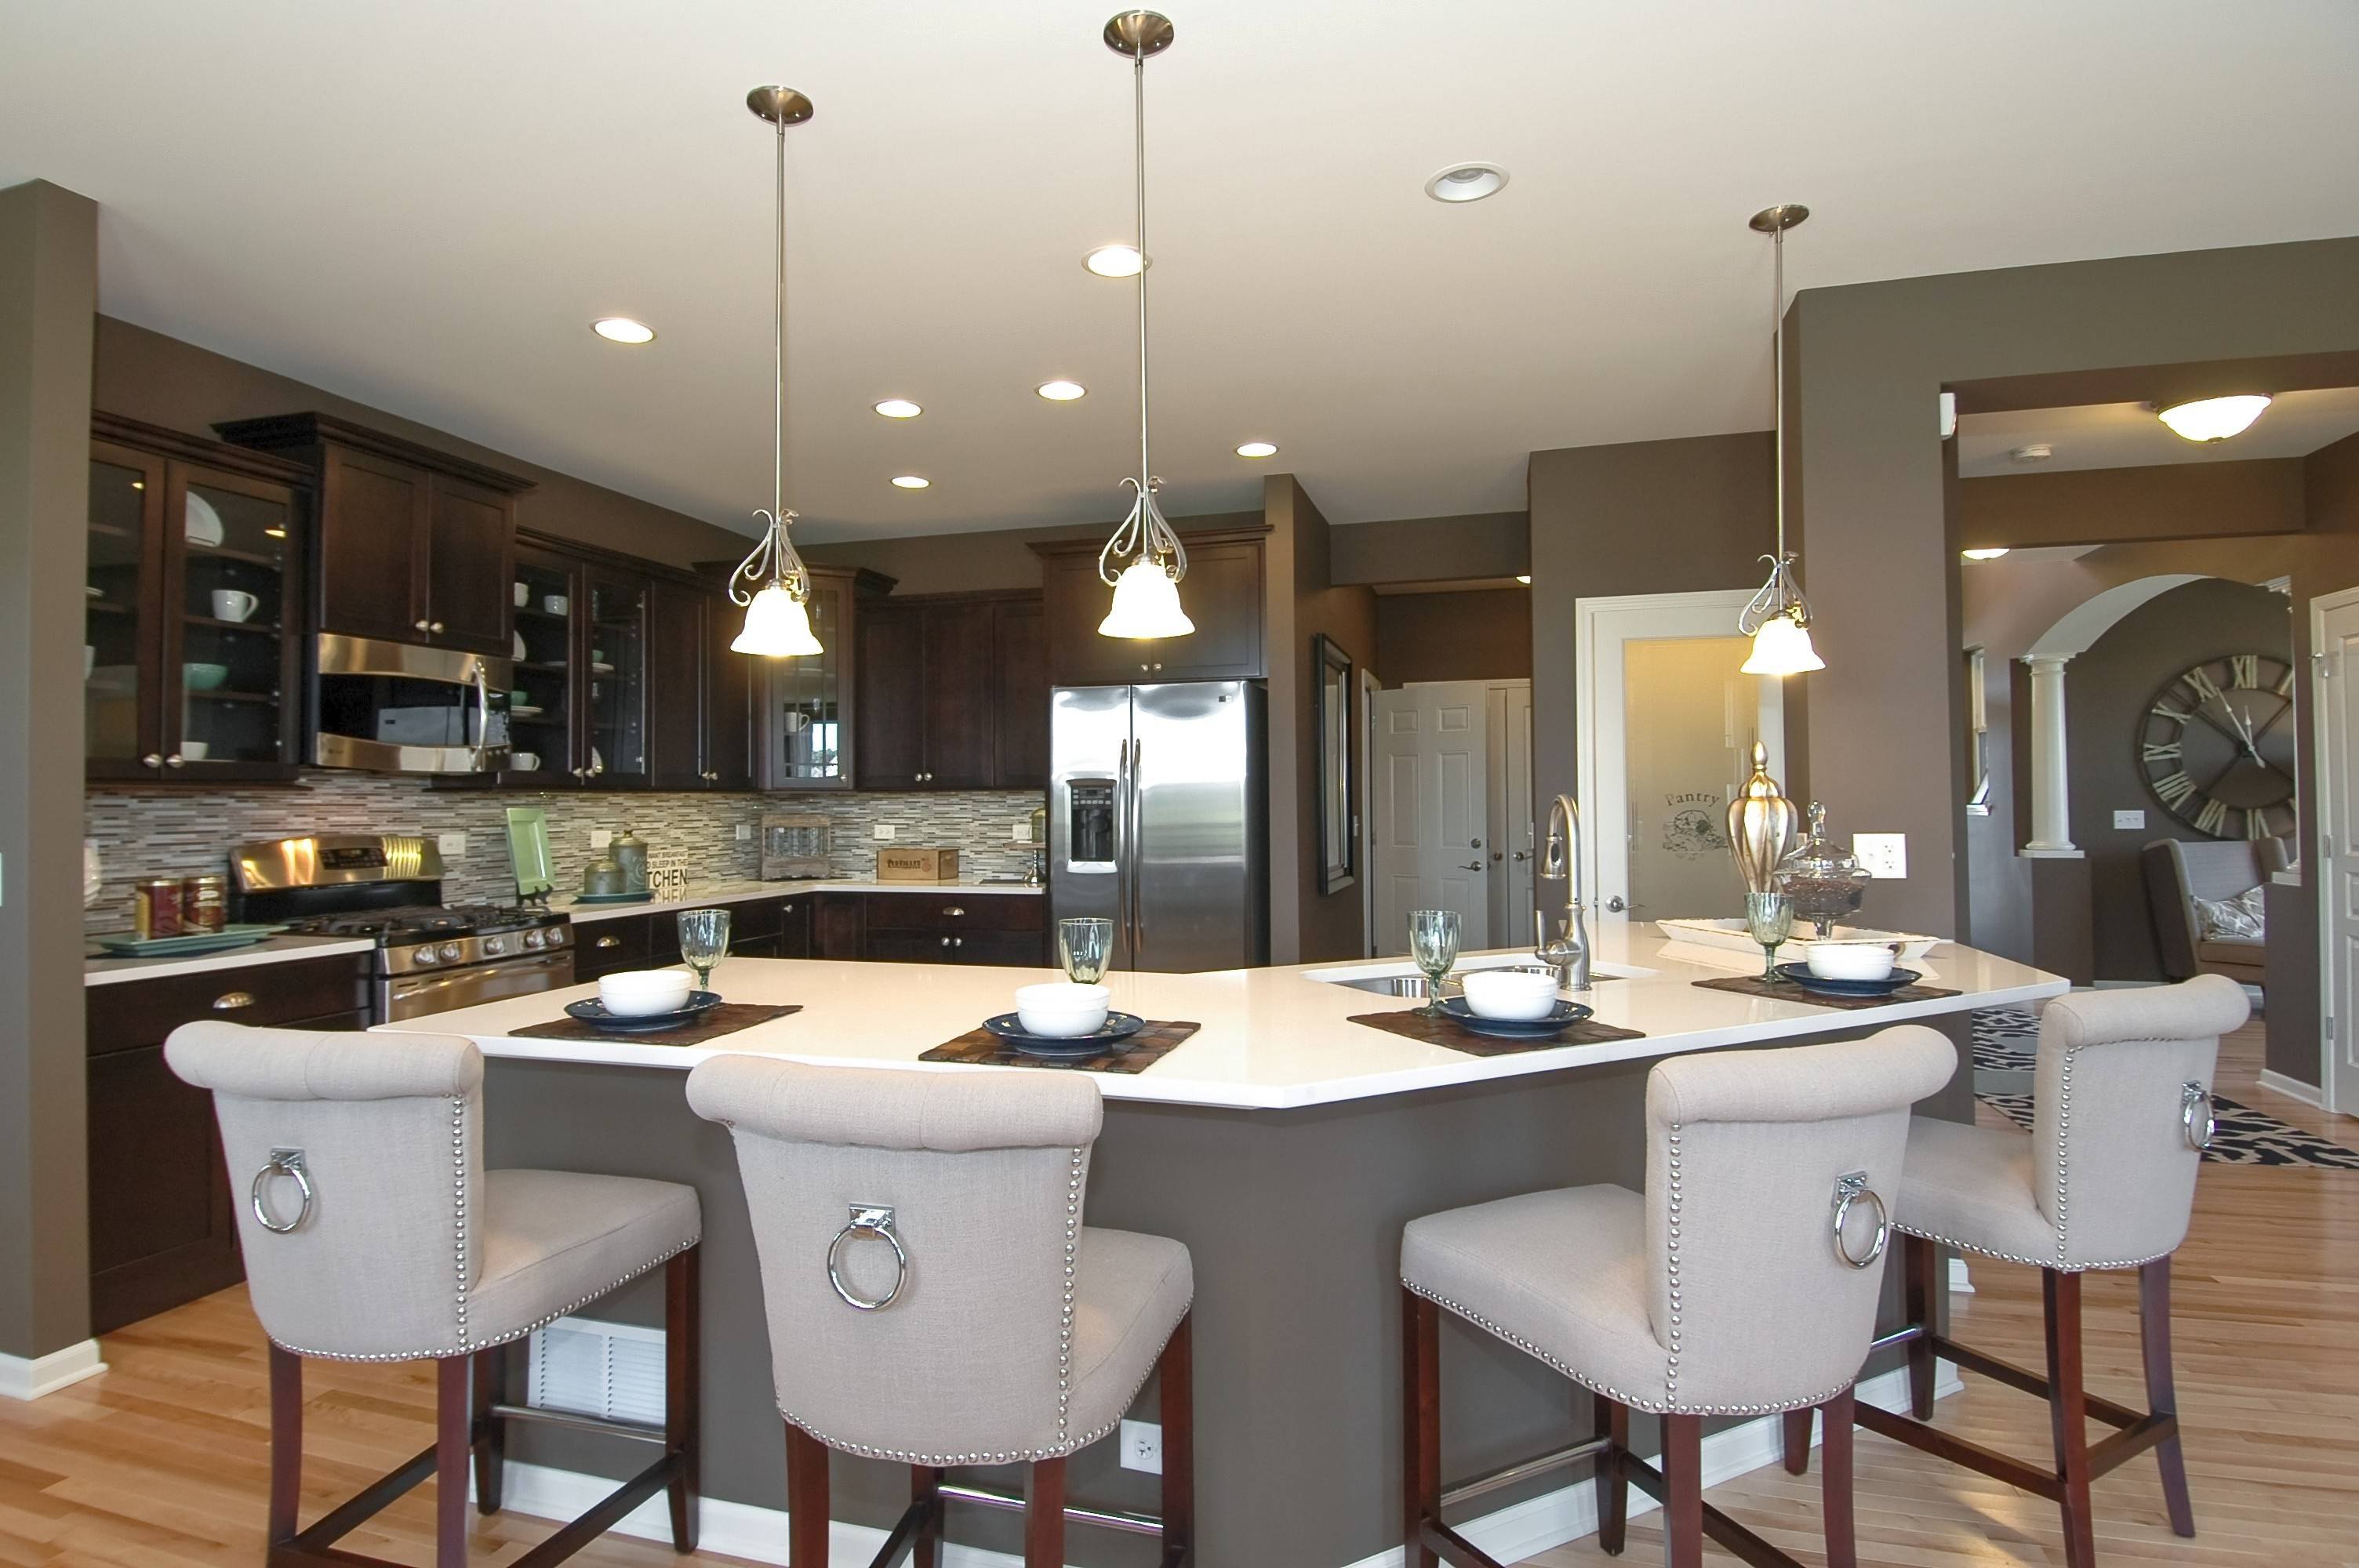 In The Saratoga Model Home At Lions Chase In Huntley Drhorton Mesmerizing Kitchen Model Design Design Decoration